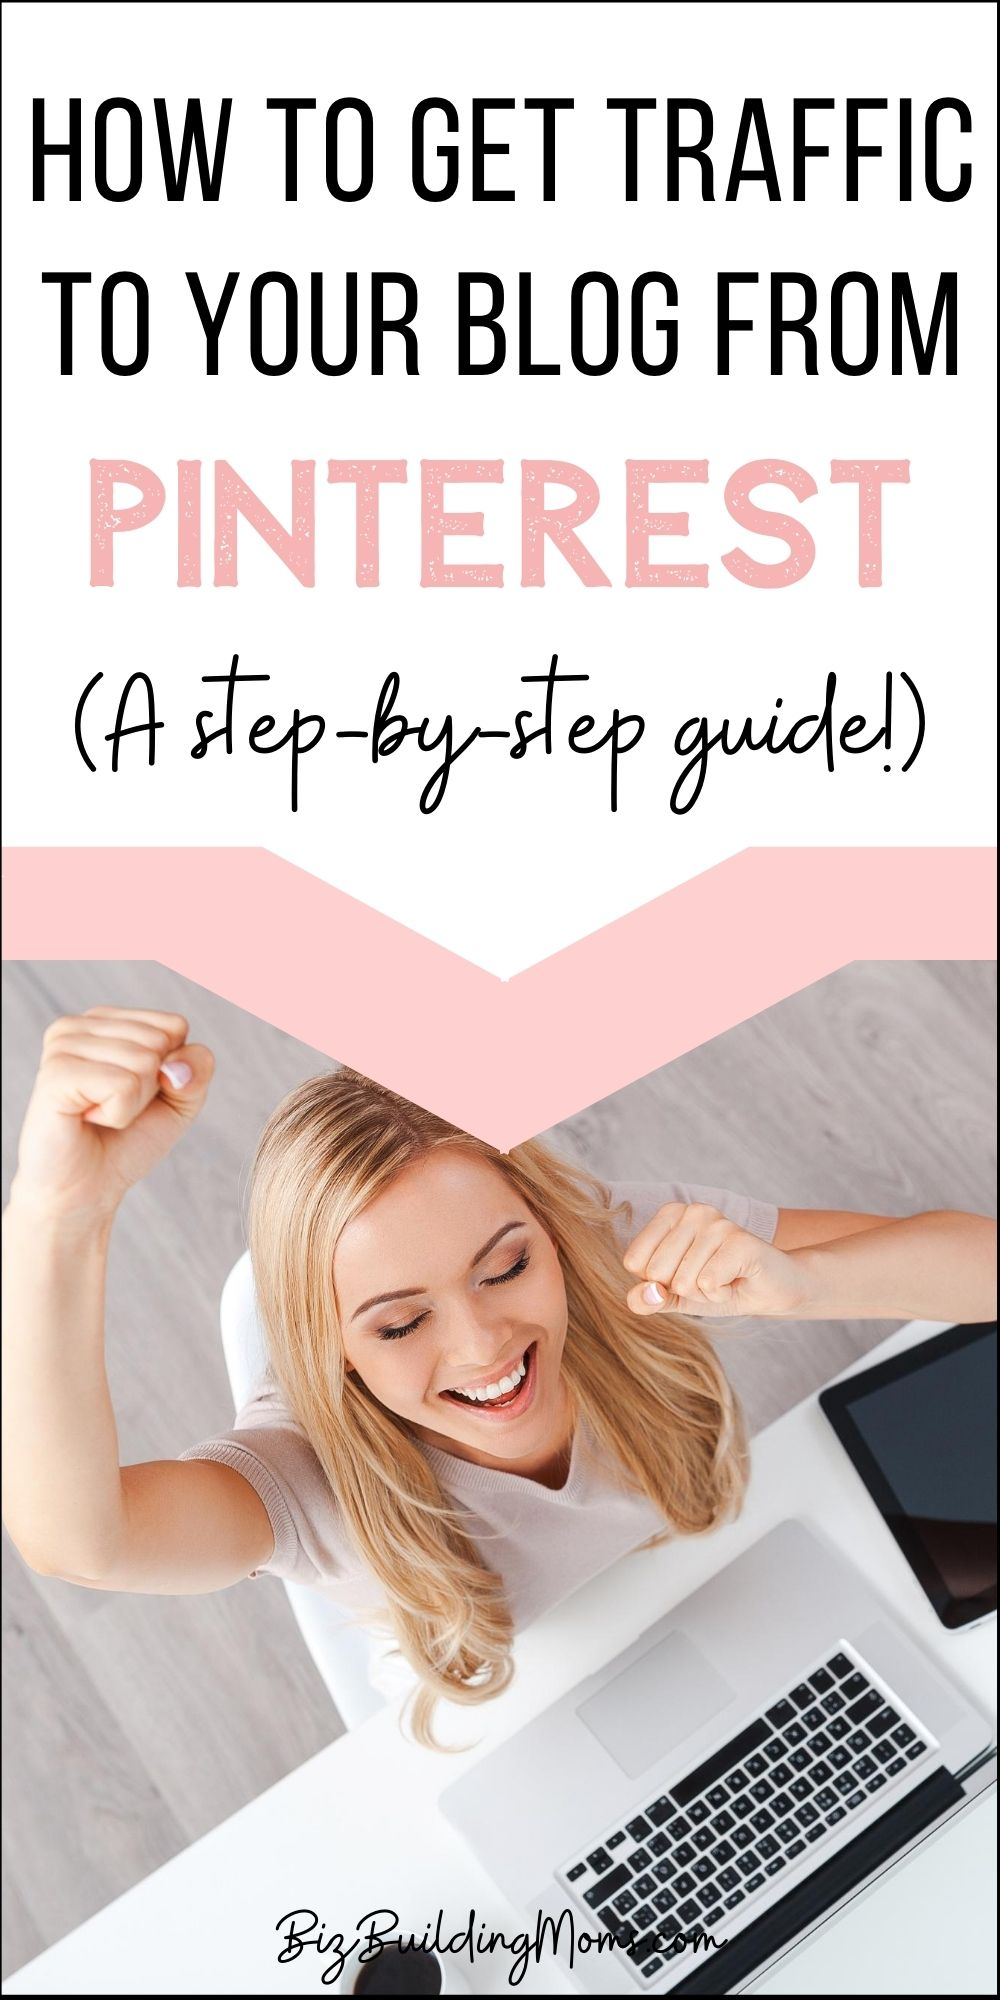 pin image of excited woman at her computer